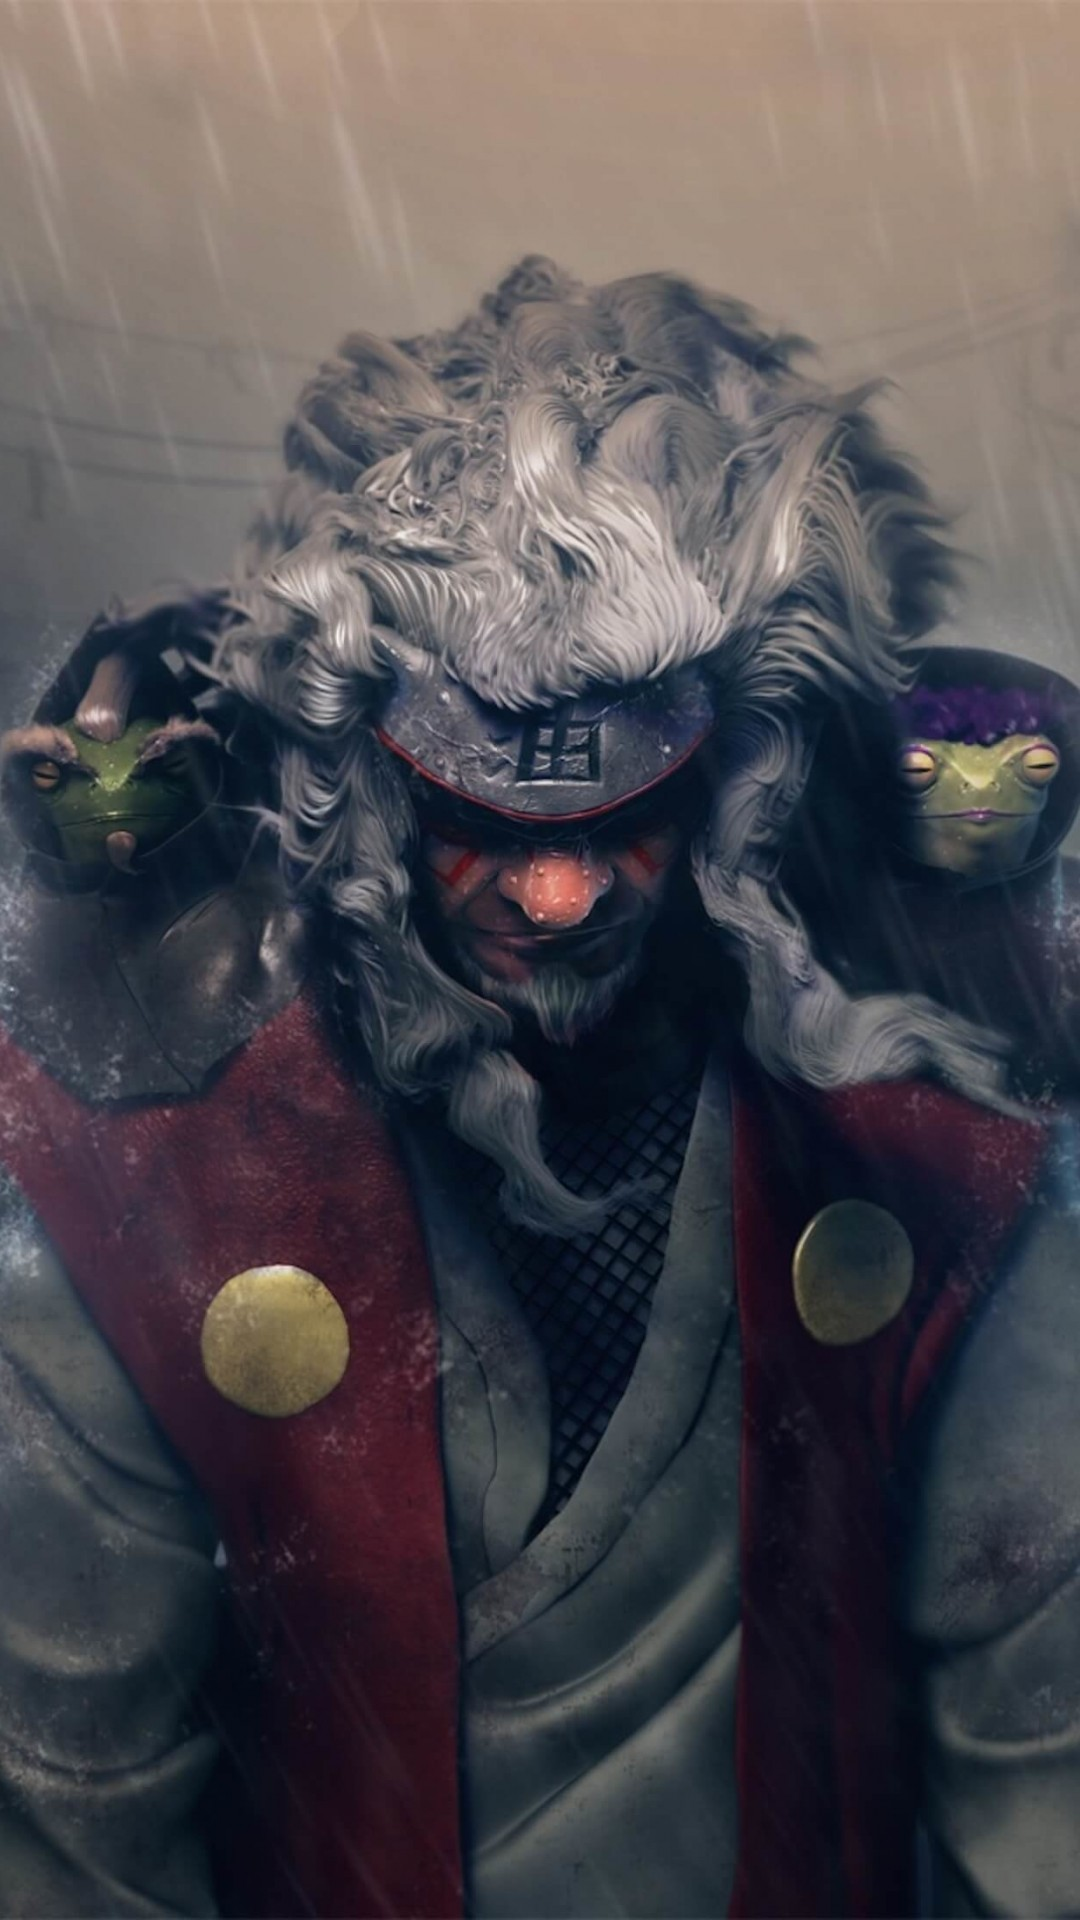 Jiraiya Fan Art - Naruto Wallpaper for SAMSUNG Galaxy Note 3